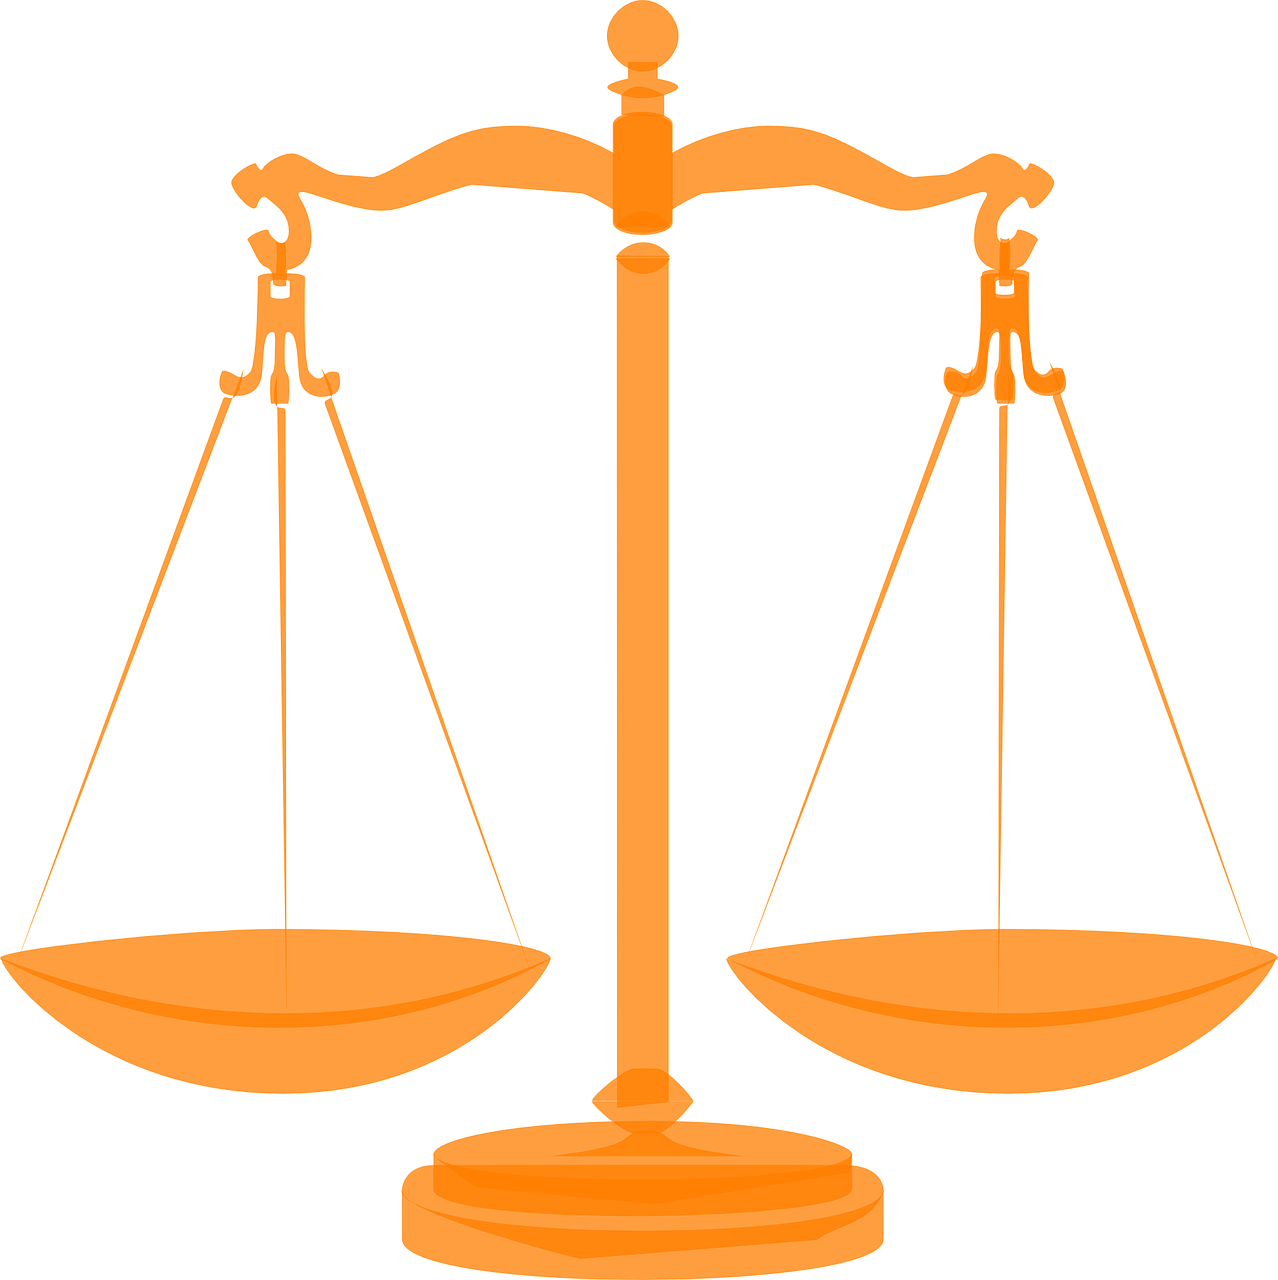 Court clipart civil court. Justice cliparthot hammer of